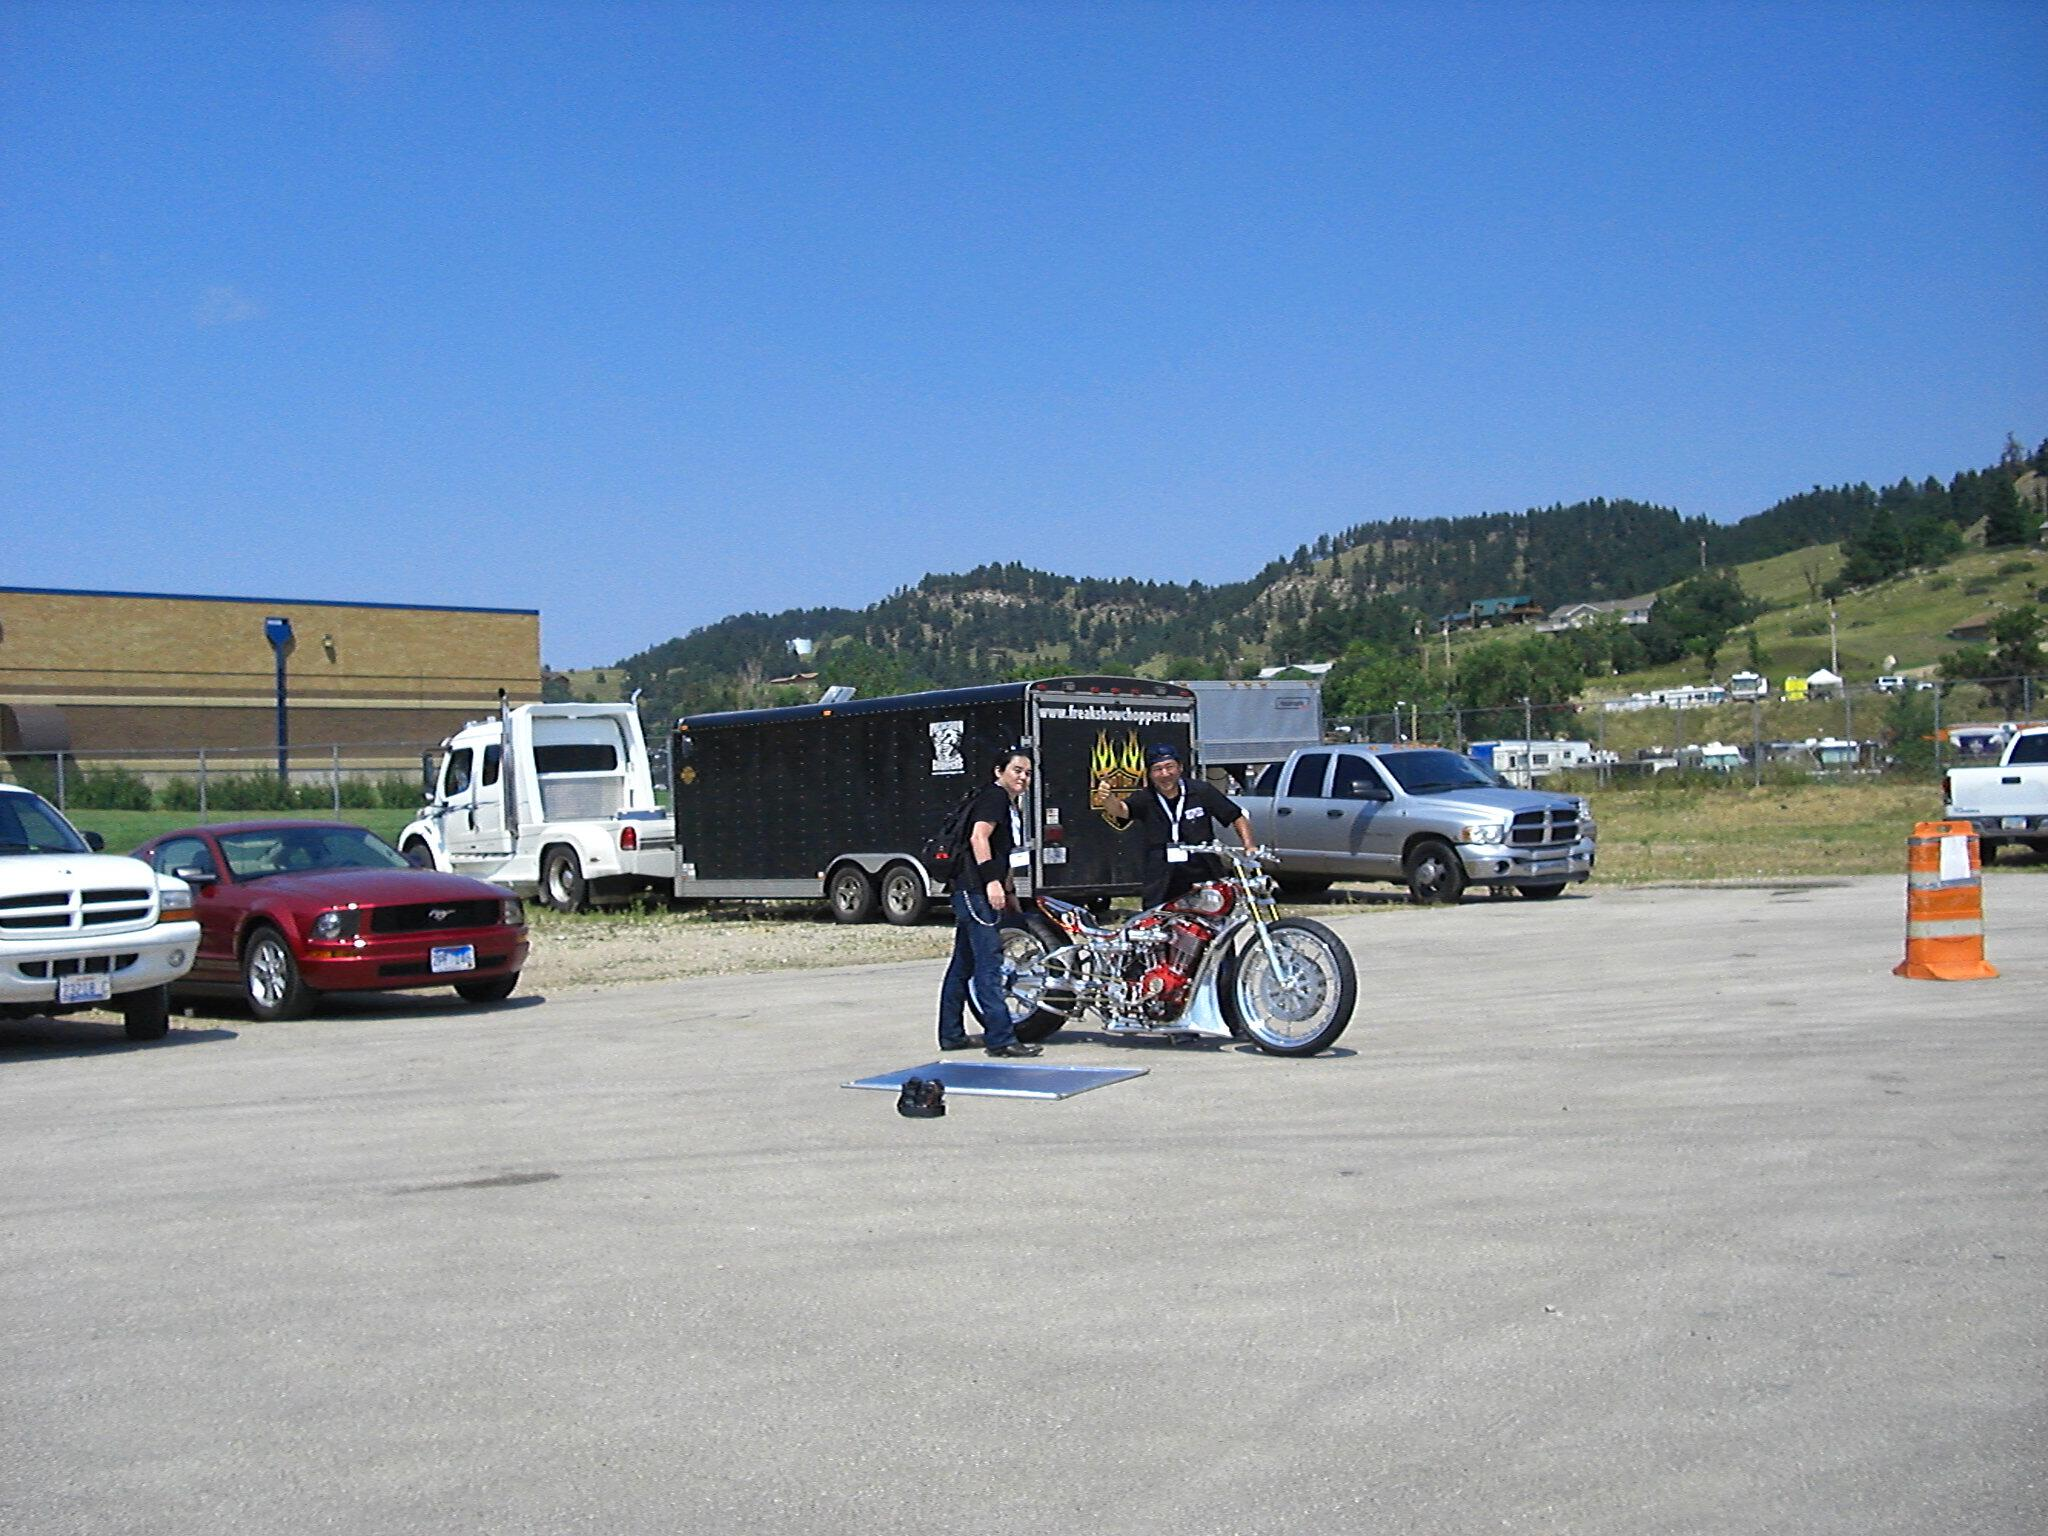 Who is this Sturgis 2007 Red-Gladiator